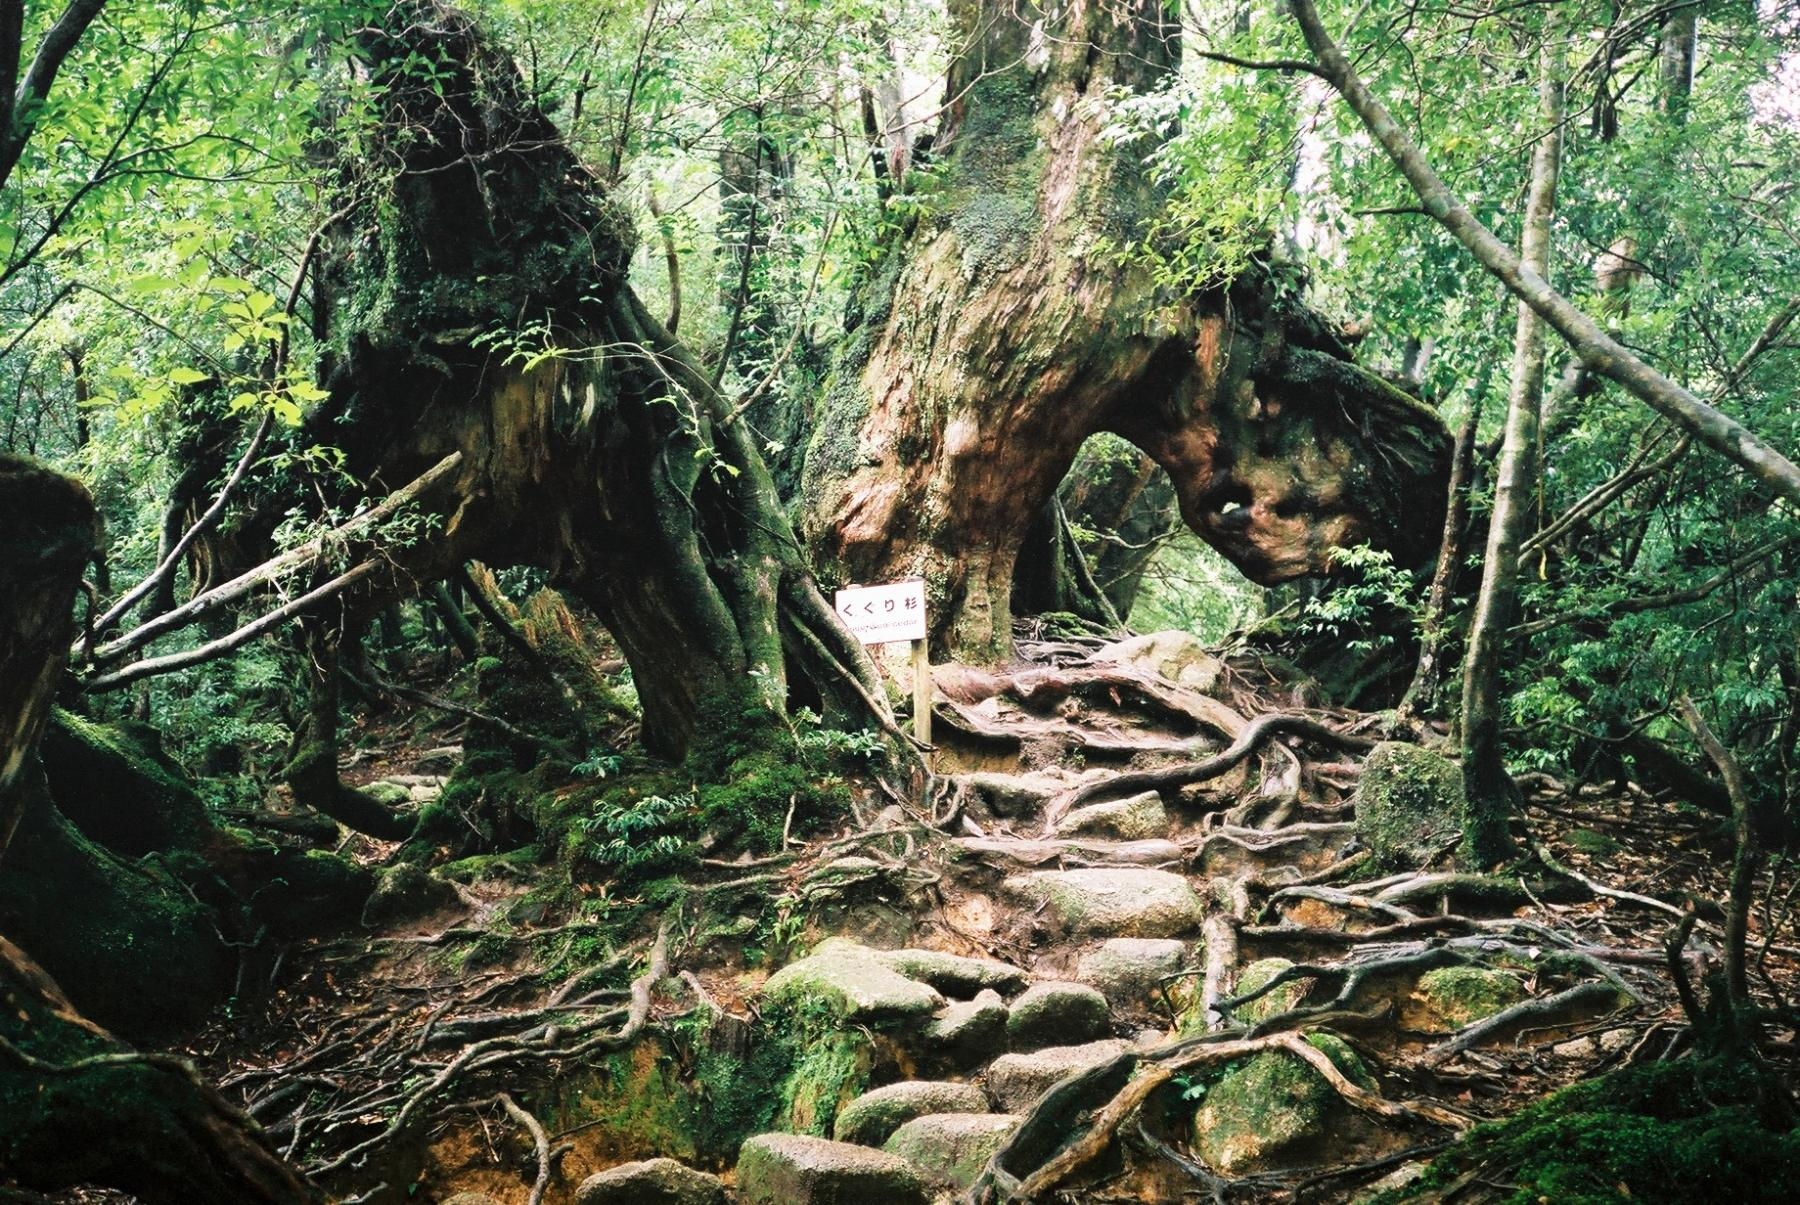 Let's go ancient forests, onsens, and volcanoes of Yakushima and Kagoshima starting at Kyushu, Japan